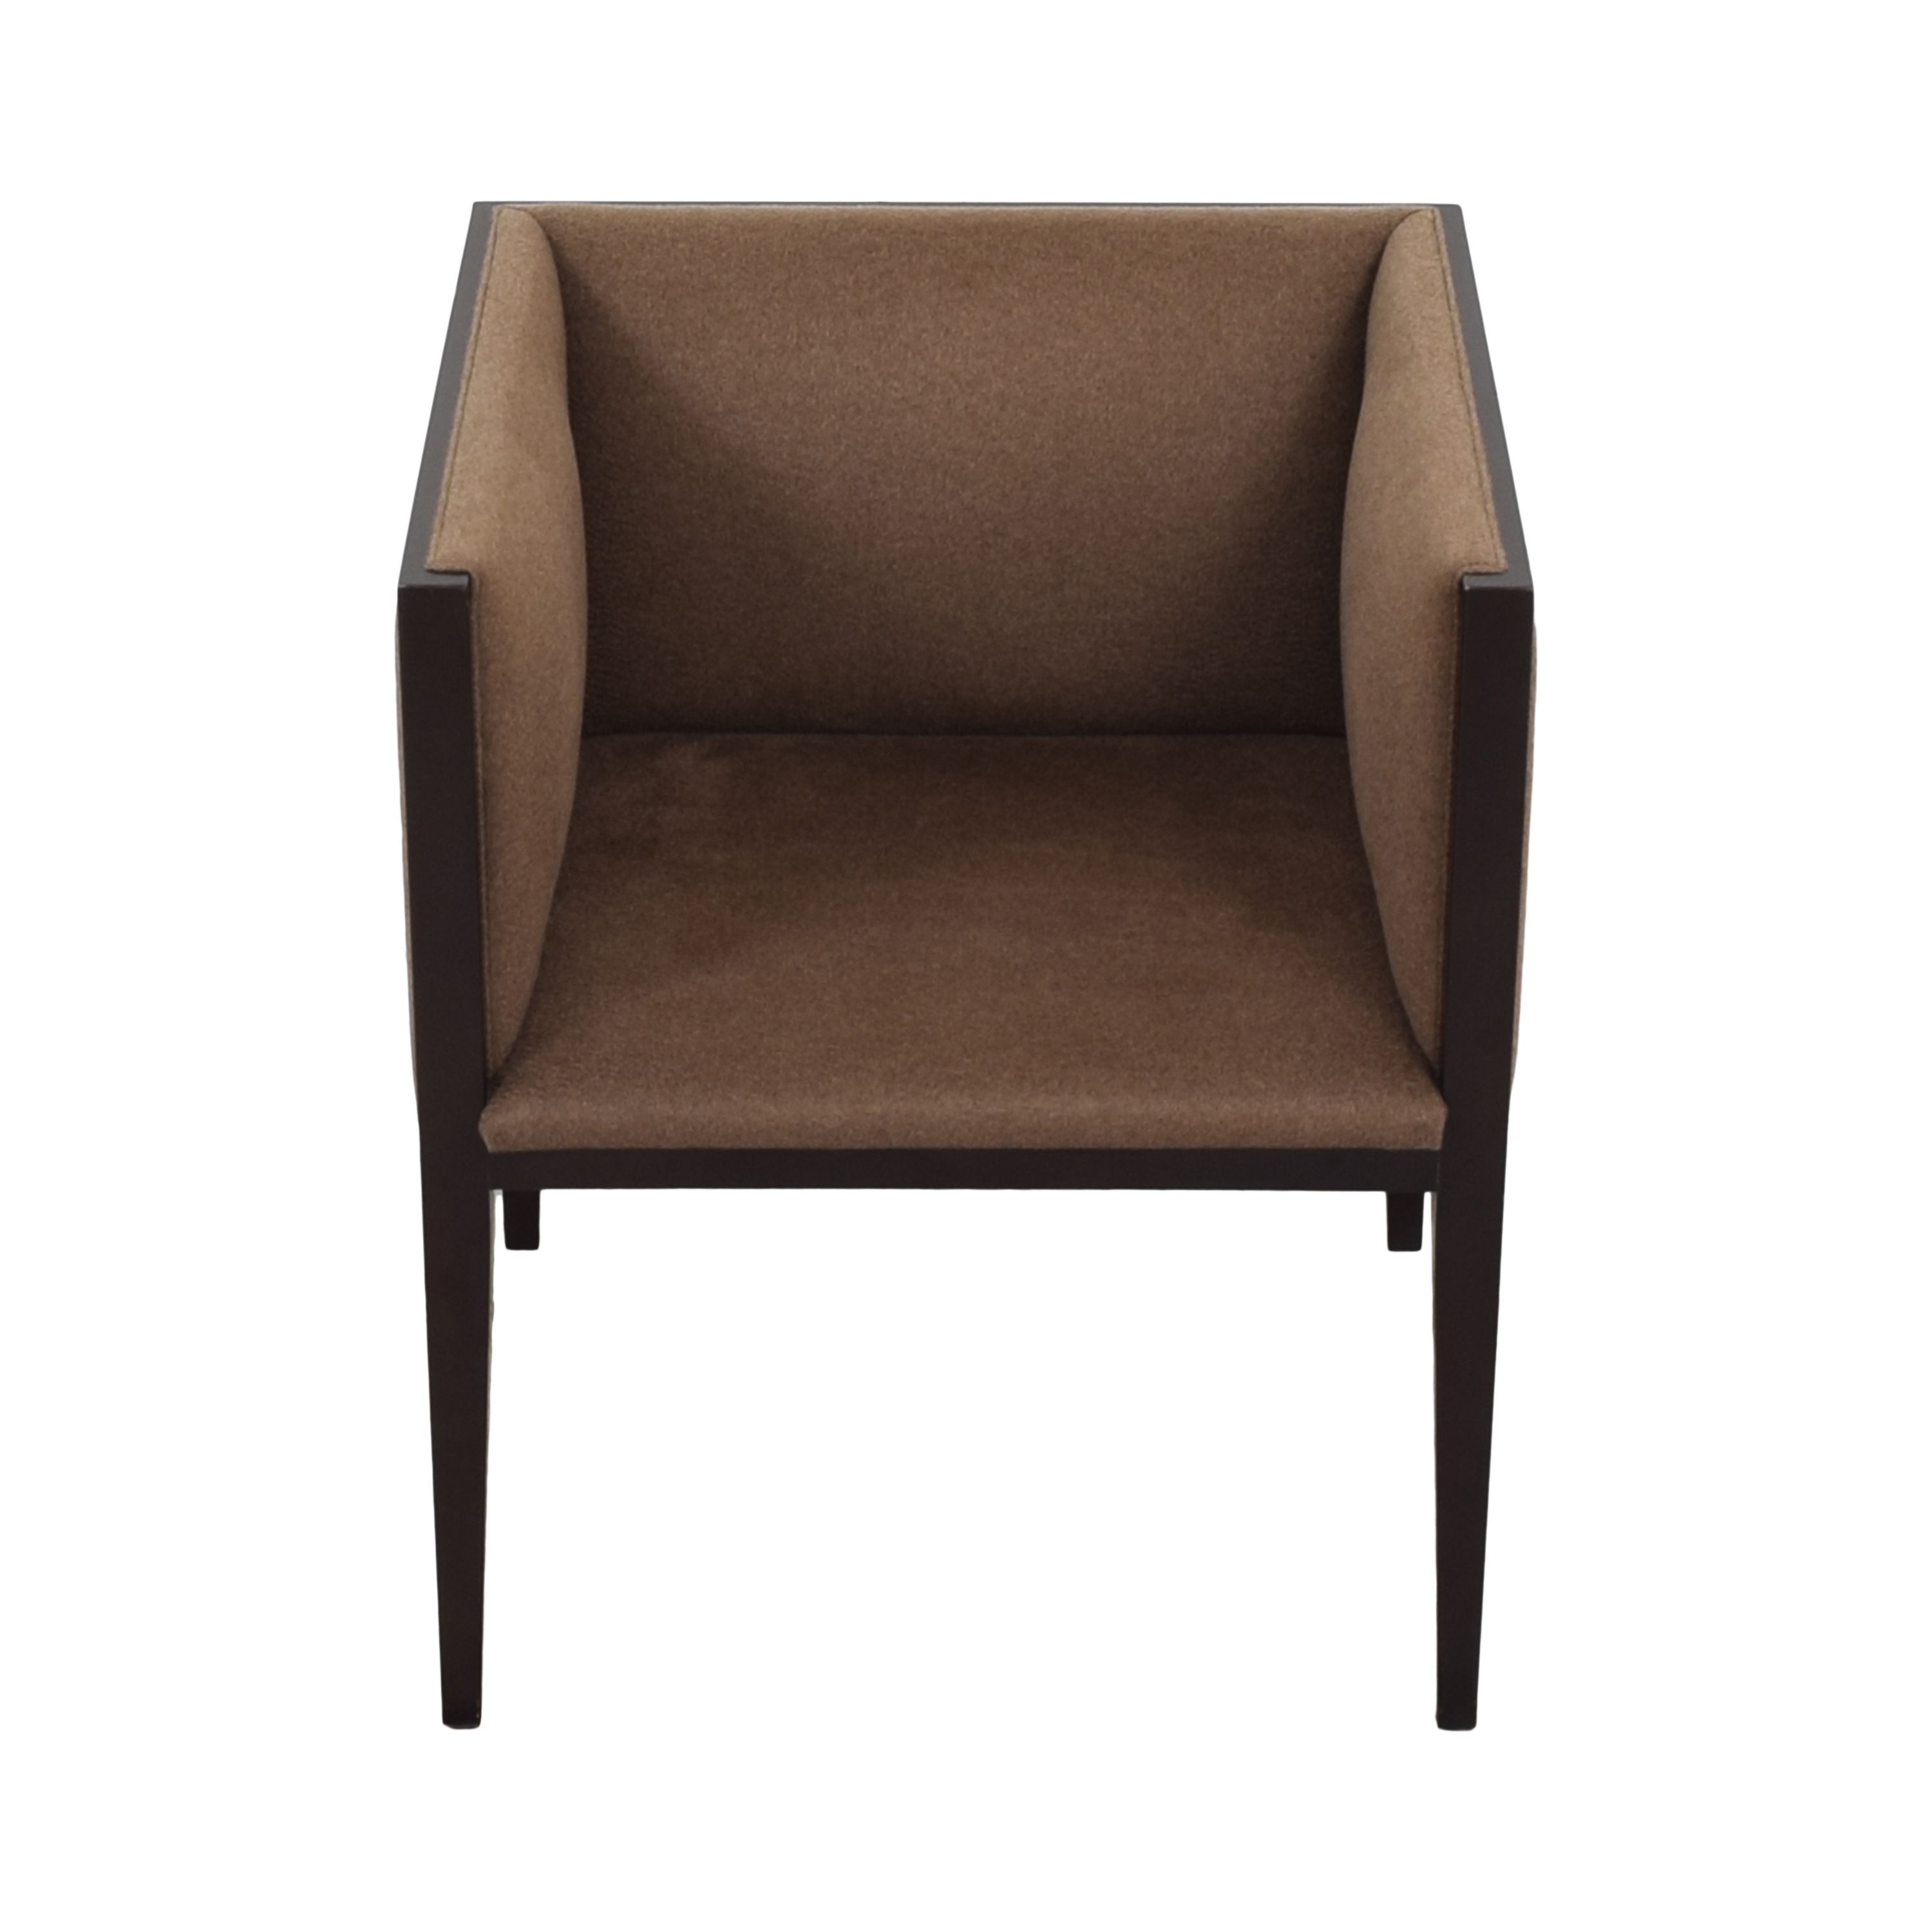 Hudson Furniture & Bedding Hudson Furniture & Bedding Contemporary Dining Chair nj